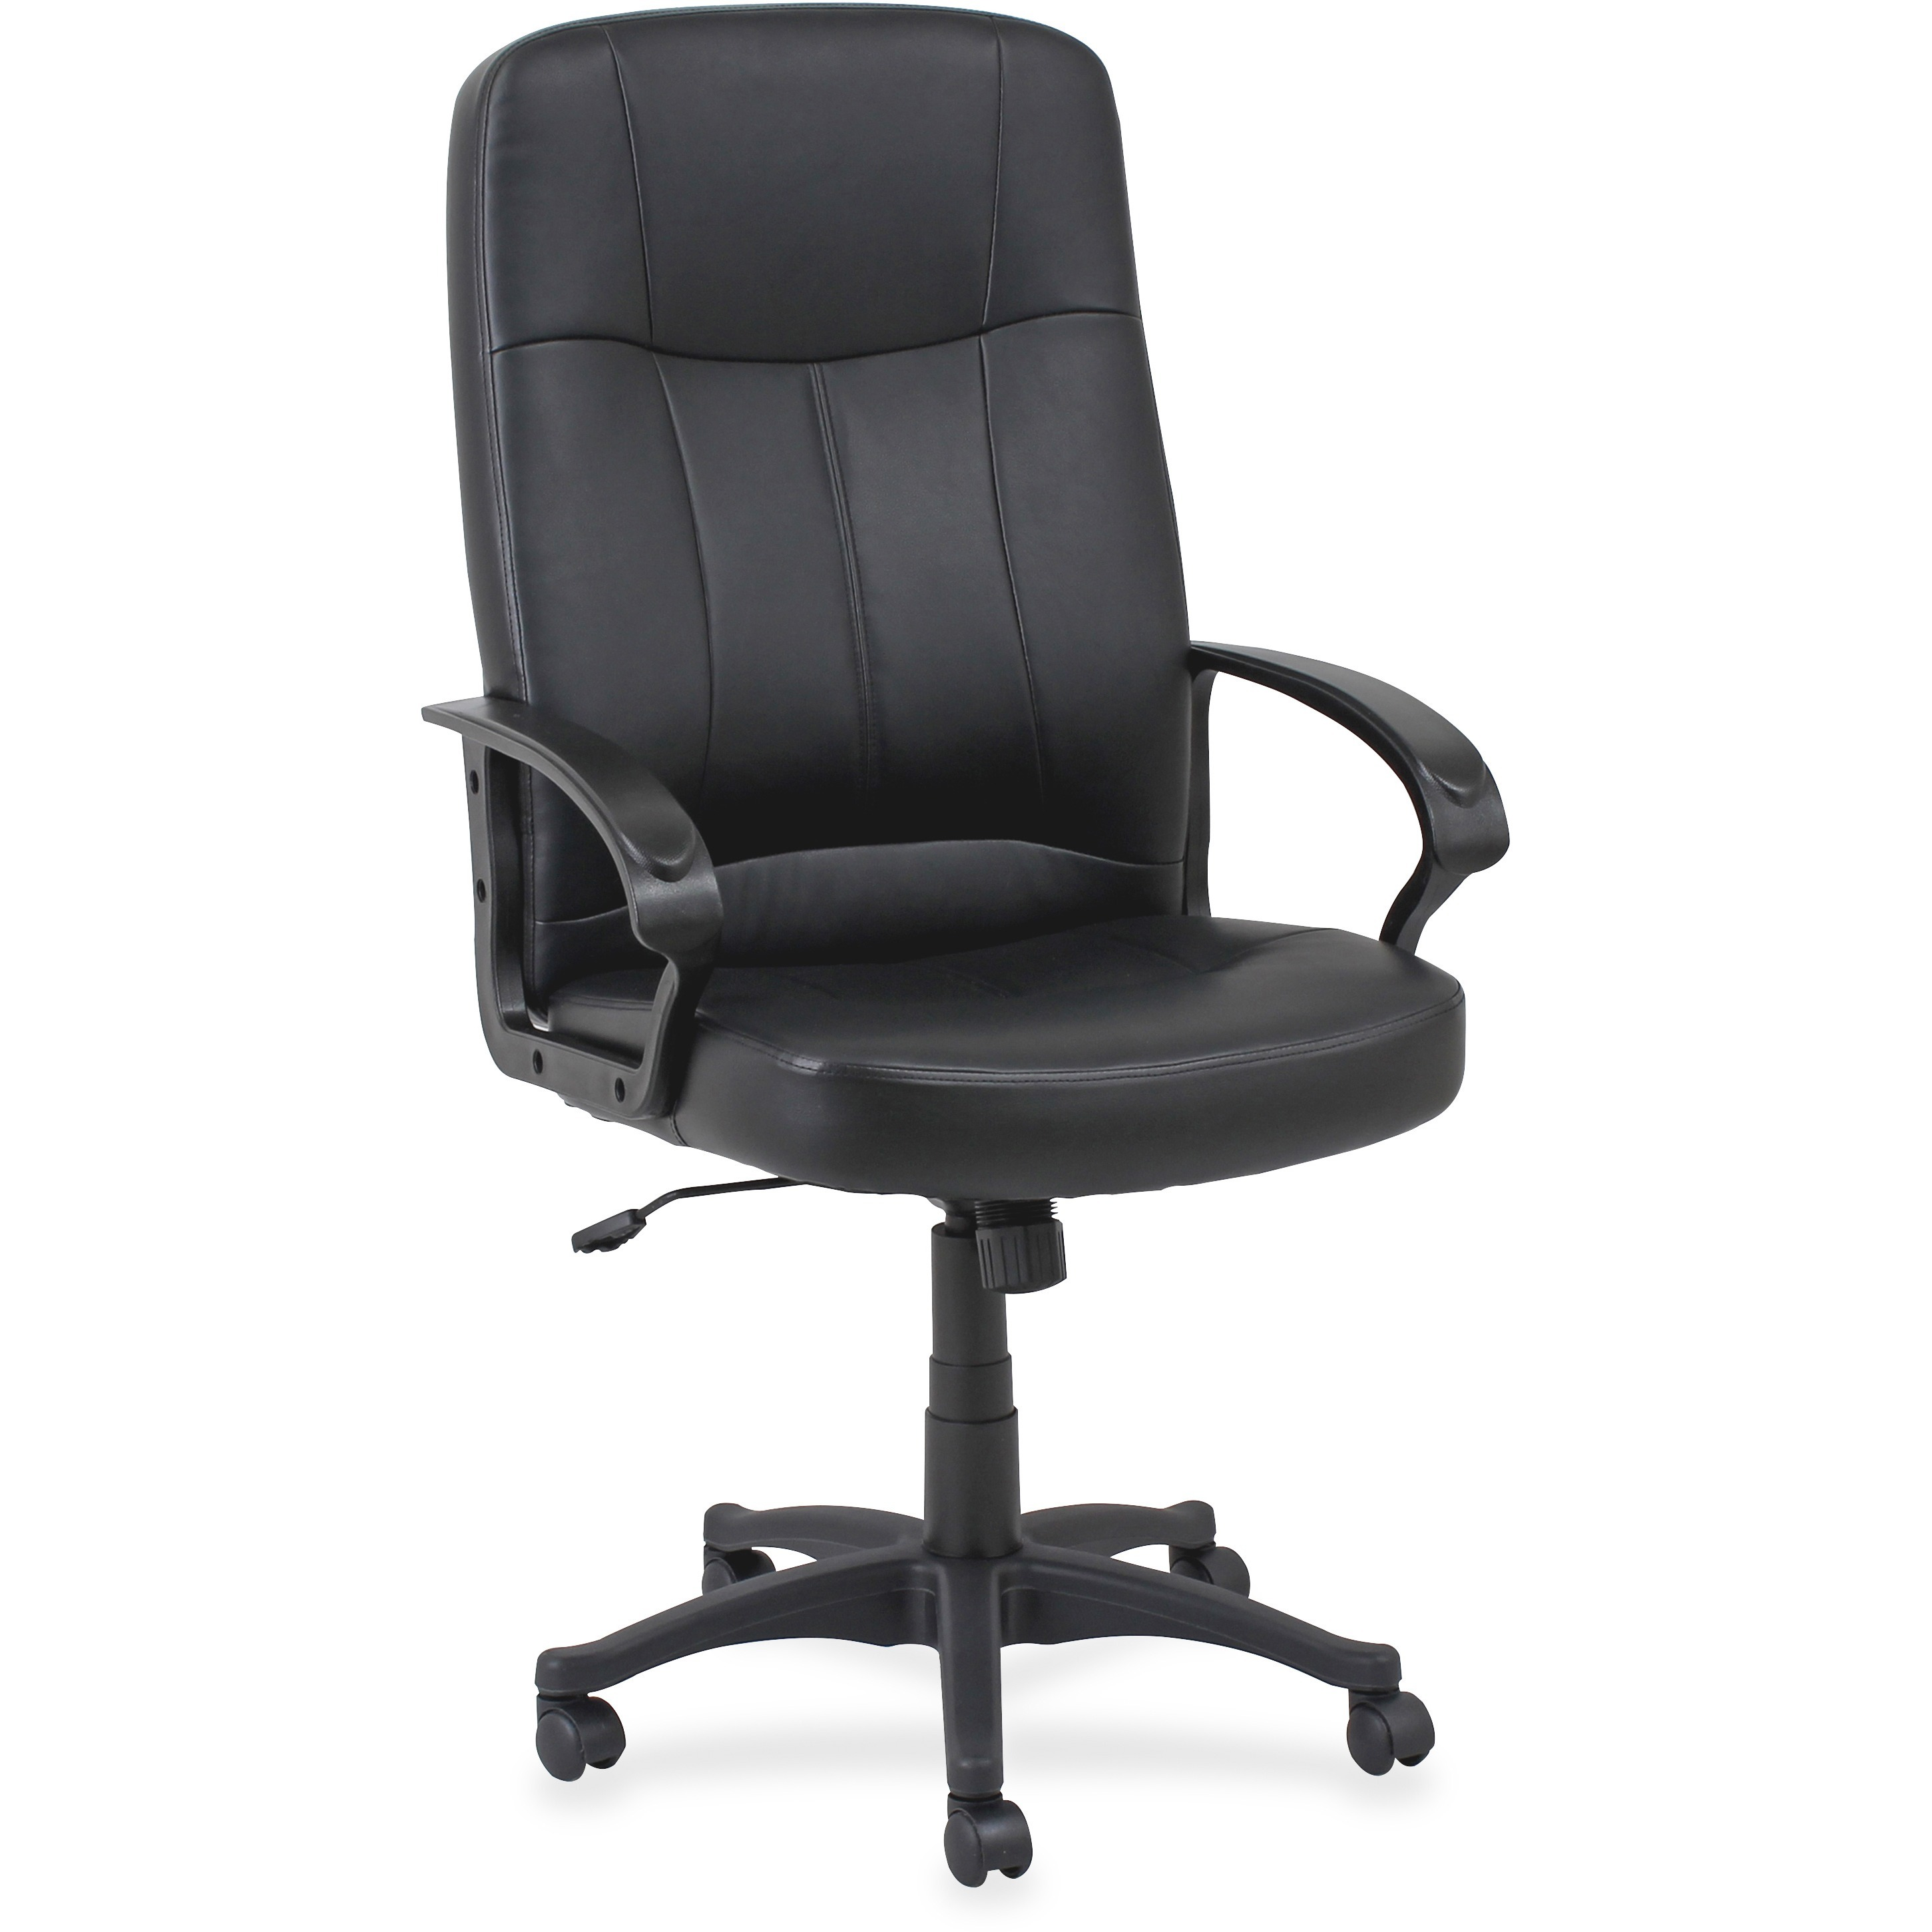 Lorell, LLR60120, Chadwick Executive Leather High-Back Chair, 1 Each, Black